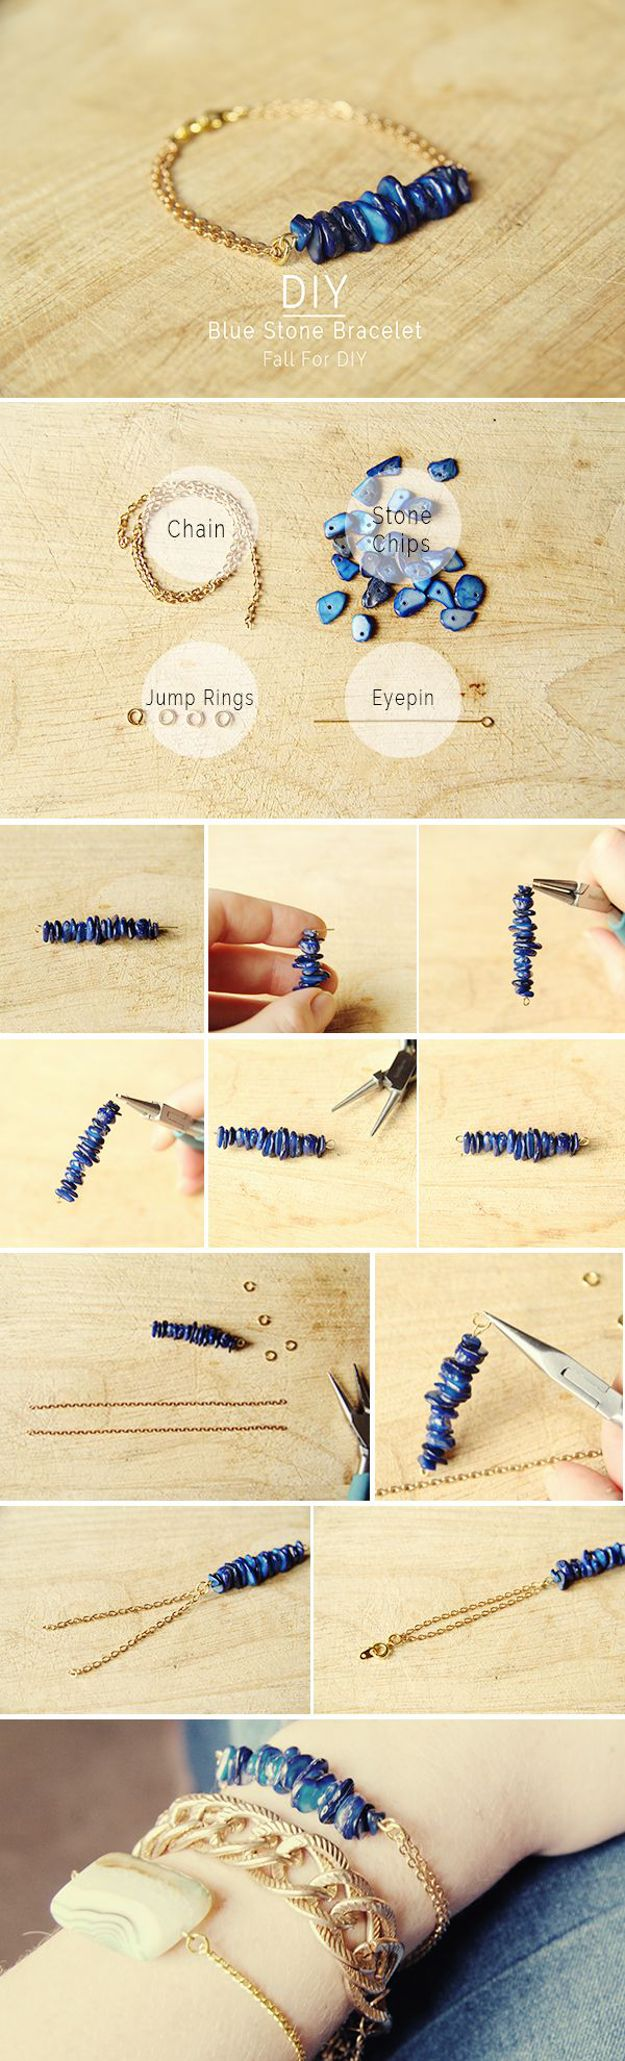 Delicate DIY Friendship Bracelets | If you're looking for a simple DIY bracelet, this is the one you should try. #DiyReady diyready.com